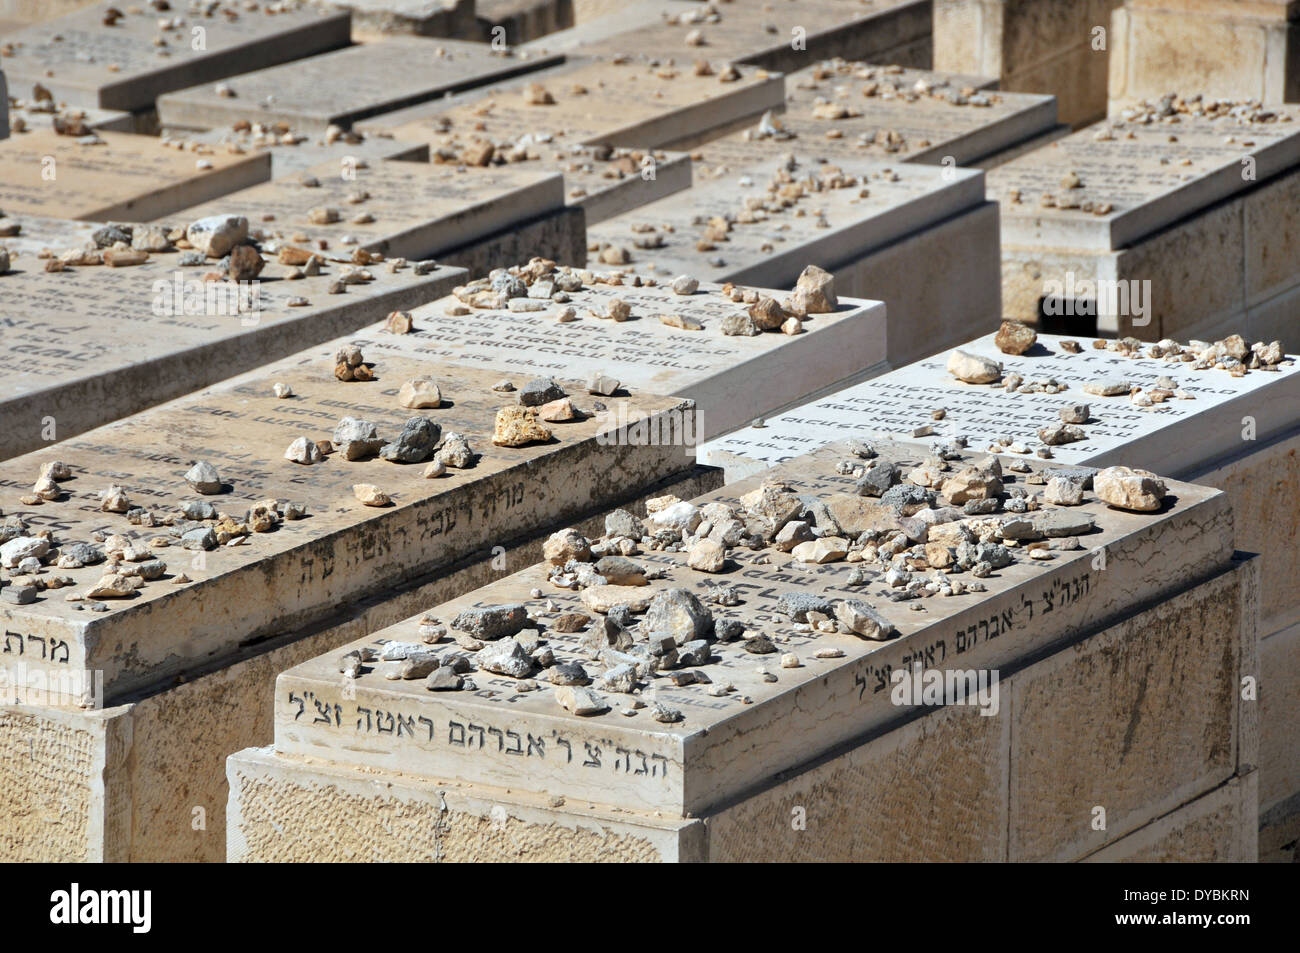 View of tombs in the Jewish cemetery of the Mount of Olives , Jerusalem, Israel - Stock Image